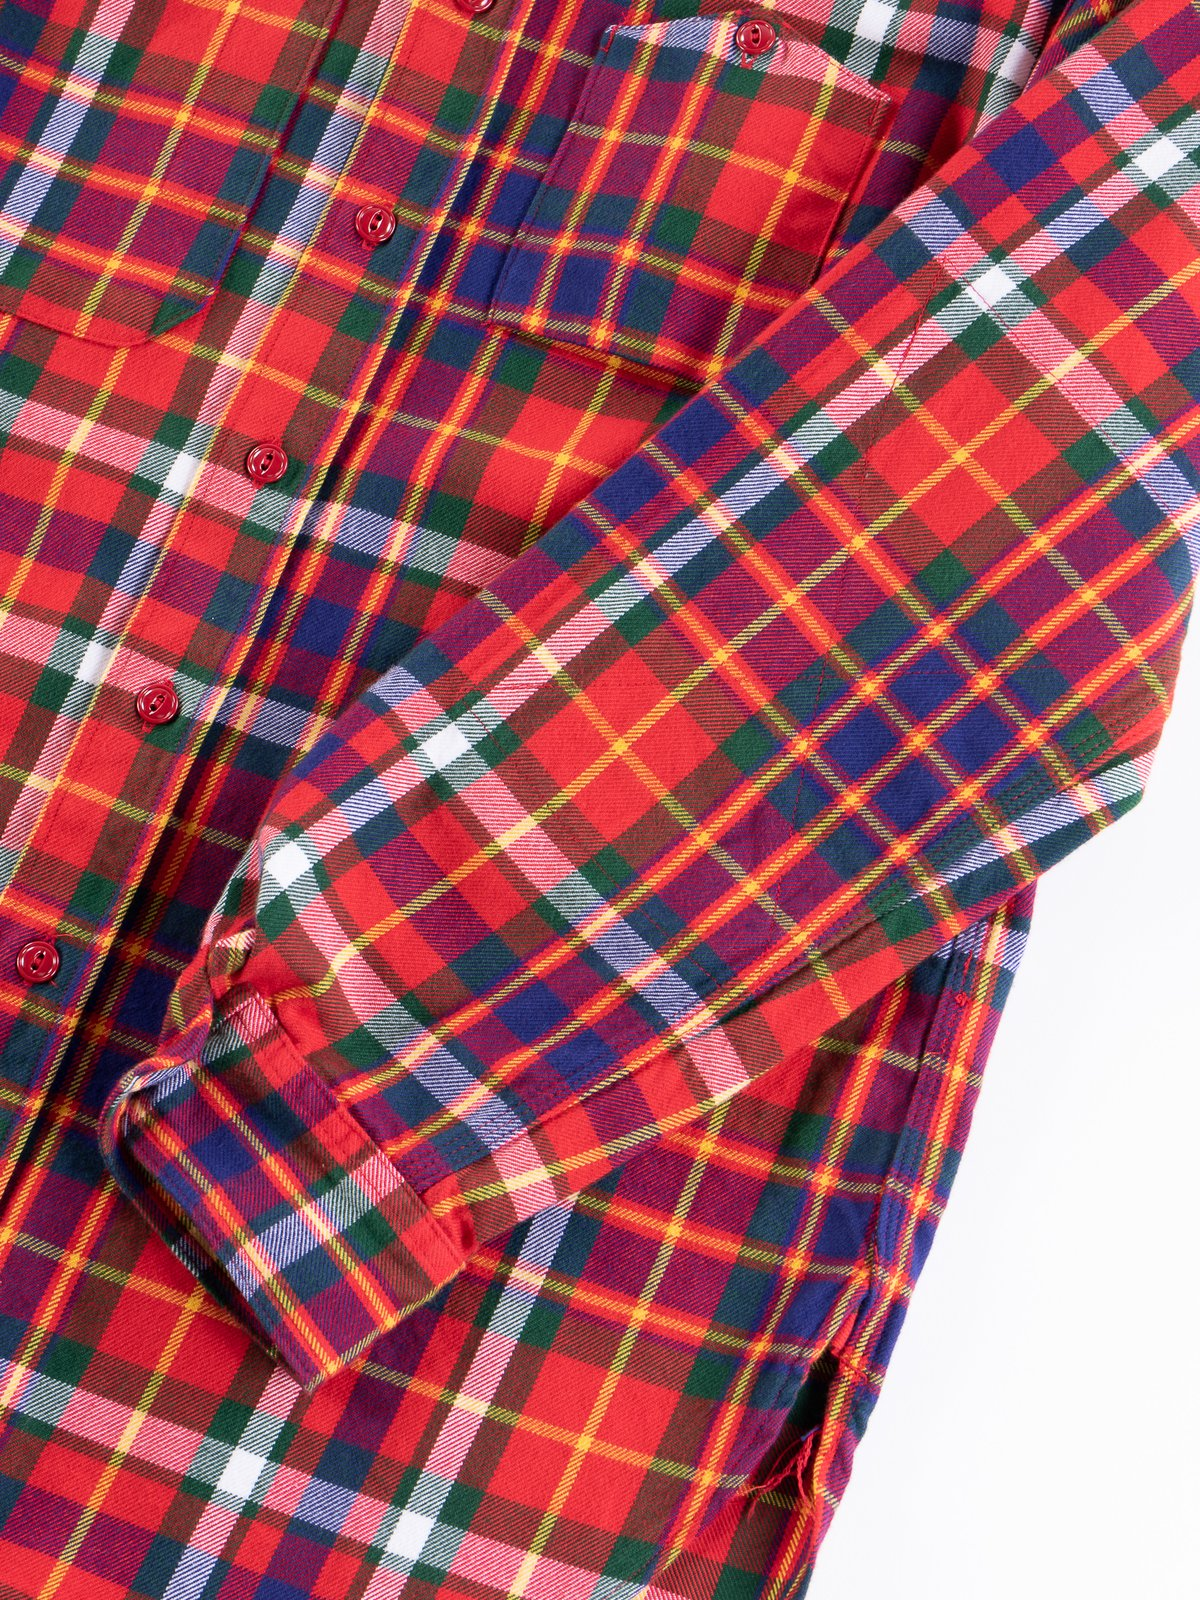 Red/Green/Yellow Cotton Twill Plaid Work Shirt - Image 4